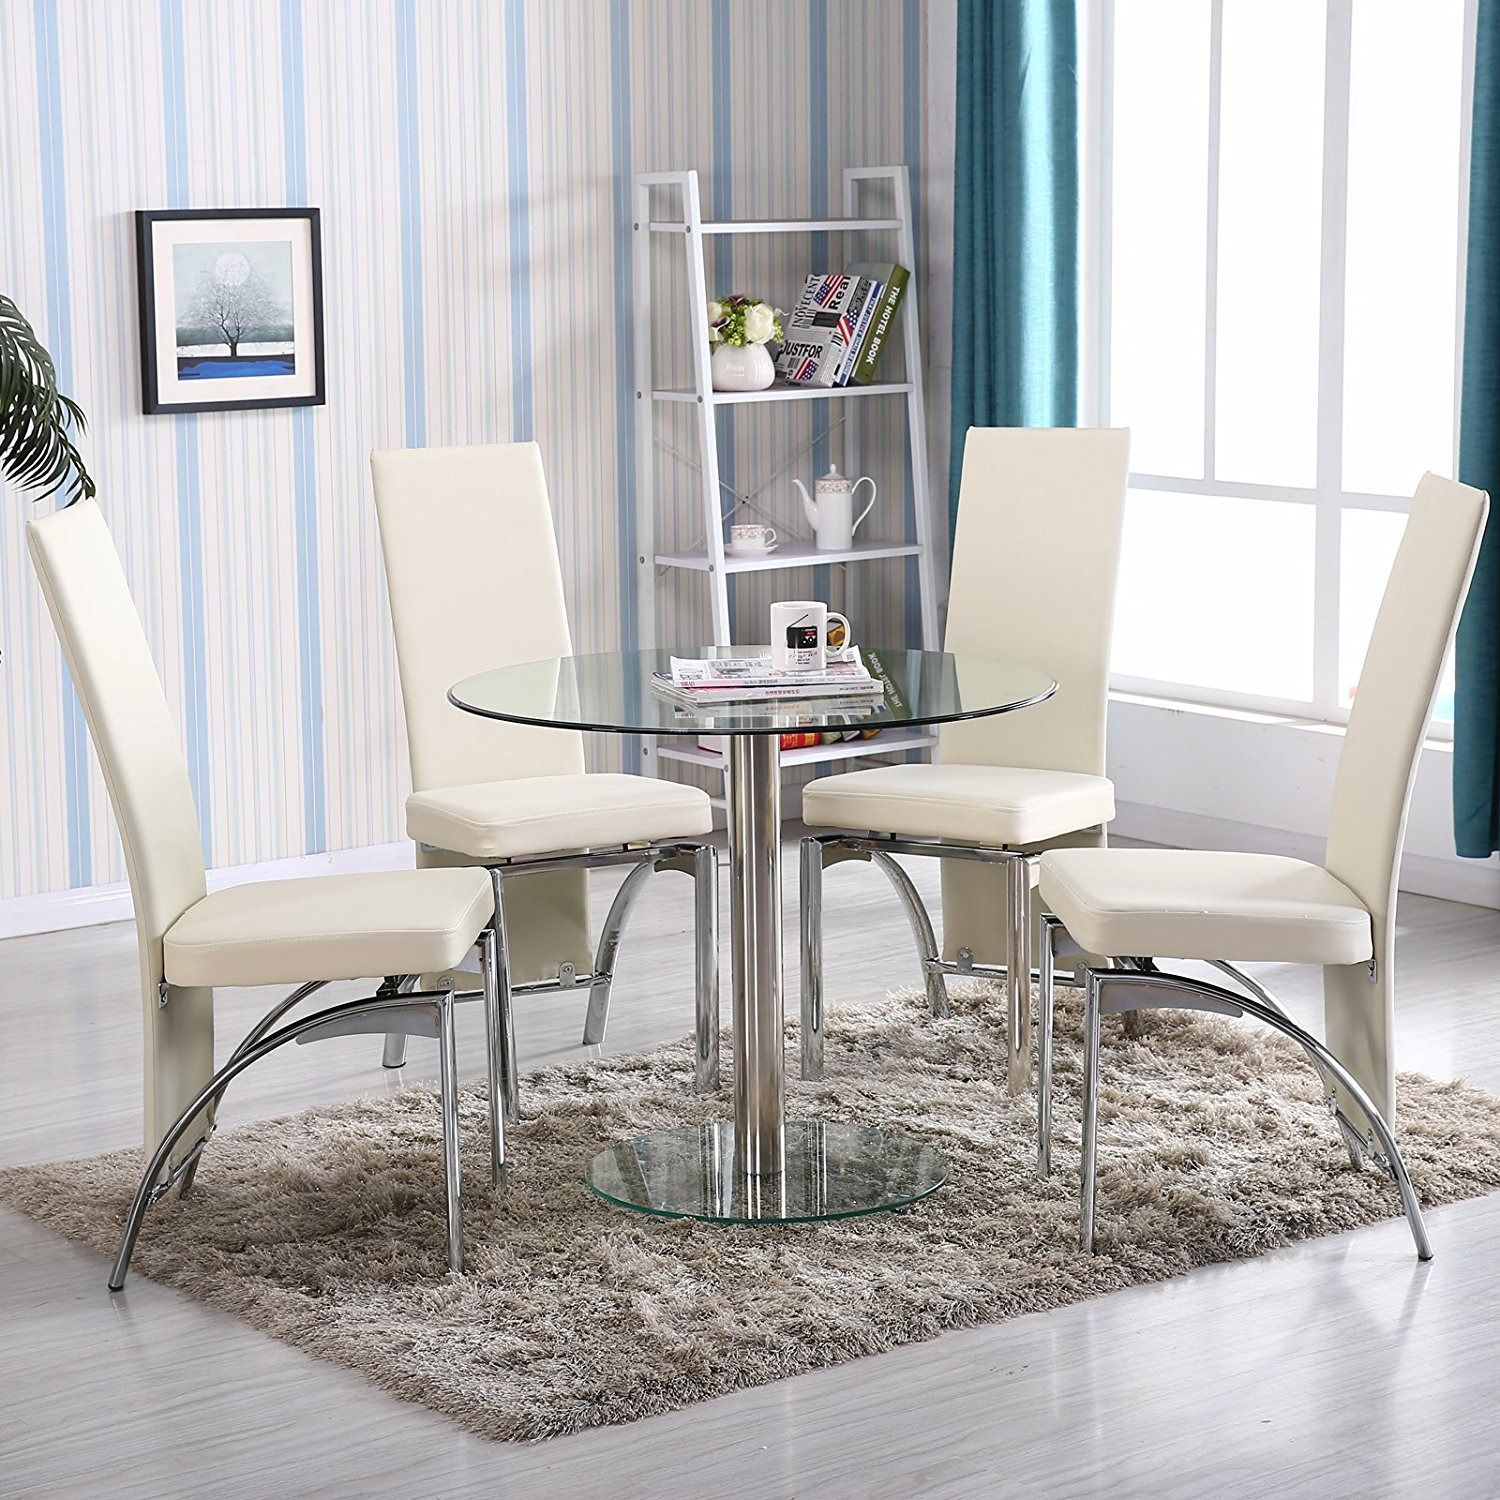 100 amazon round dining table best paint for furniture check more at http